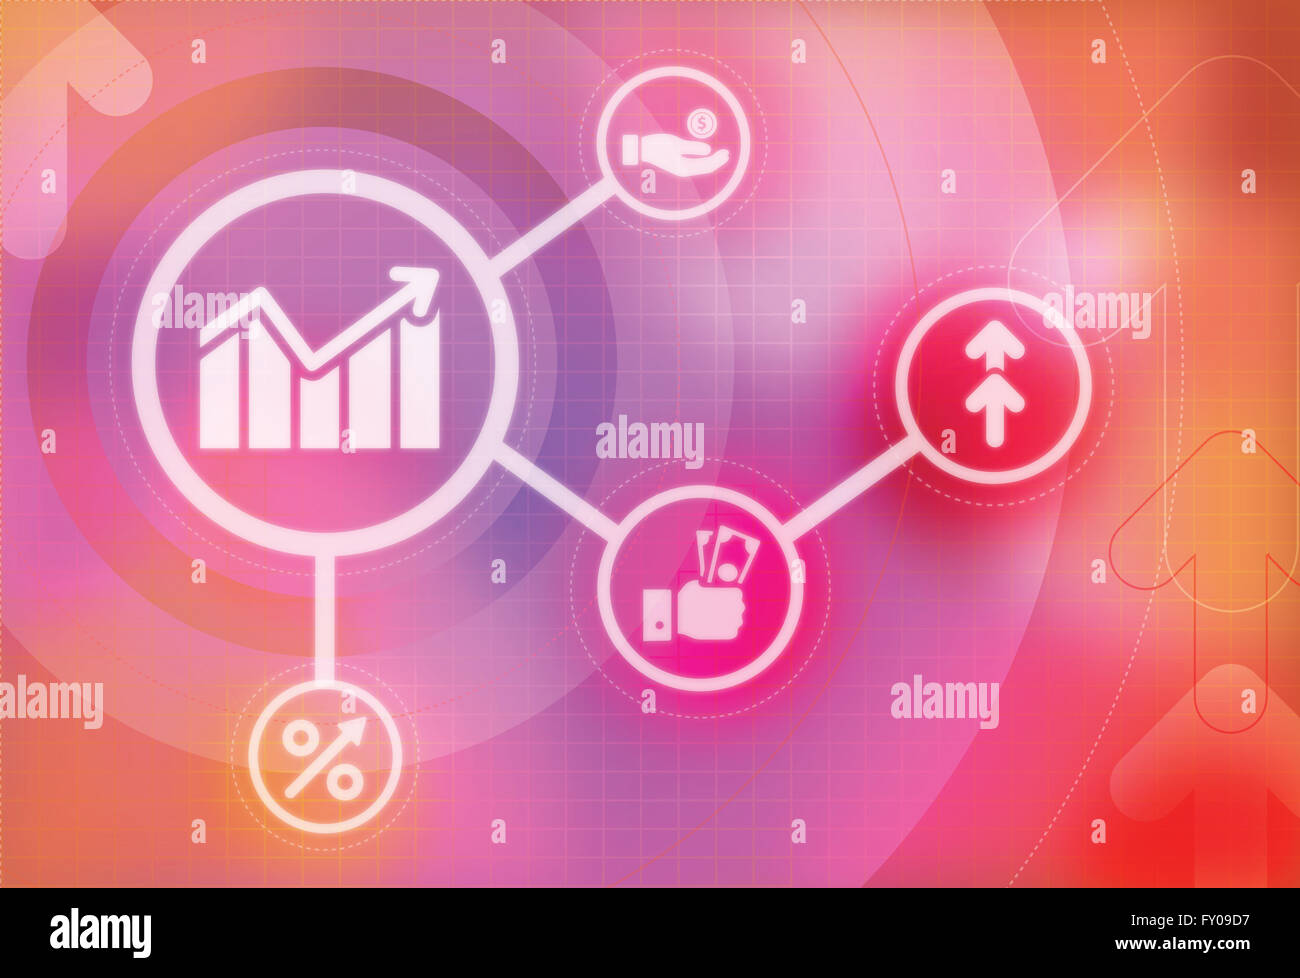 Illustrative image represents the concept of business growth and development - Stock Image